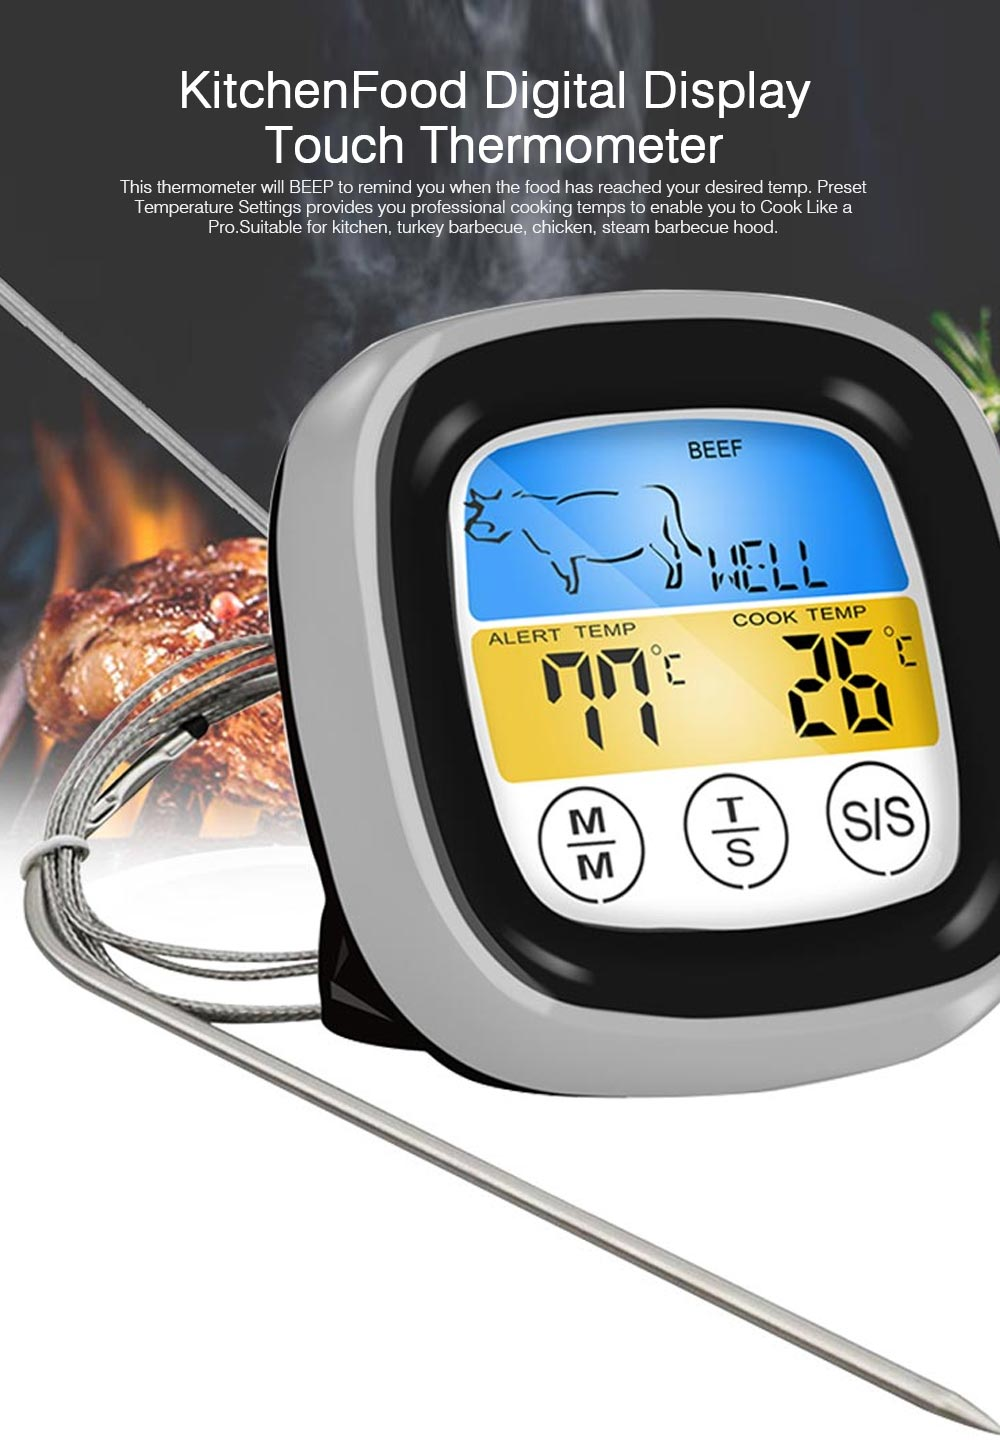 Outdoor Barbecue Thermometer Timer, Kitchen Food Digital Display Touch Thermometer, Cooking Thermometer with Food Grade Stainless Steel Probe 0